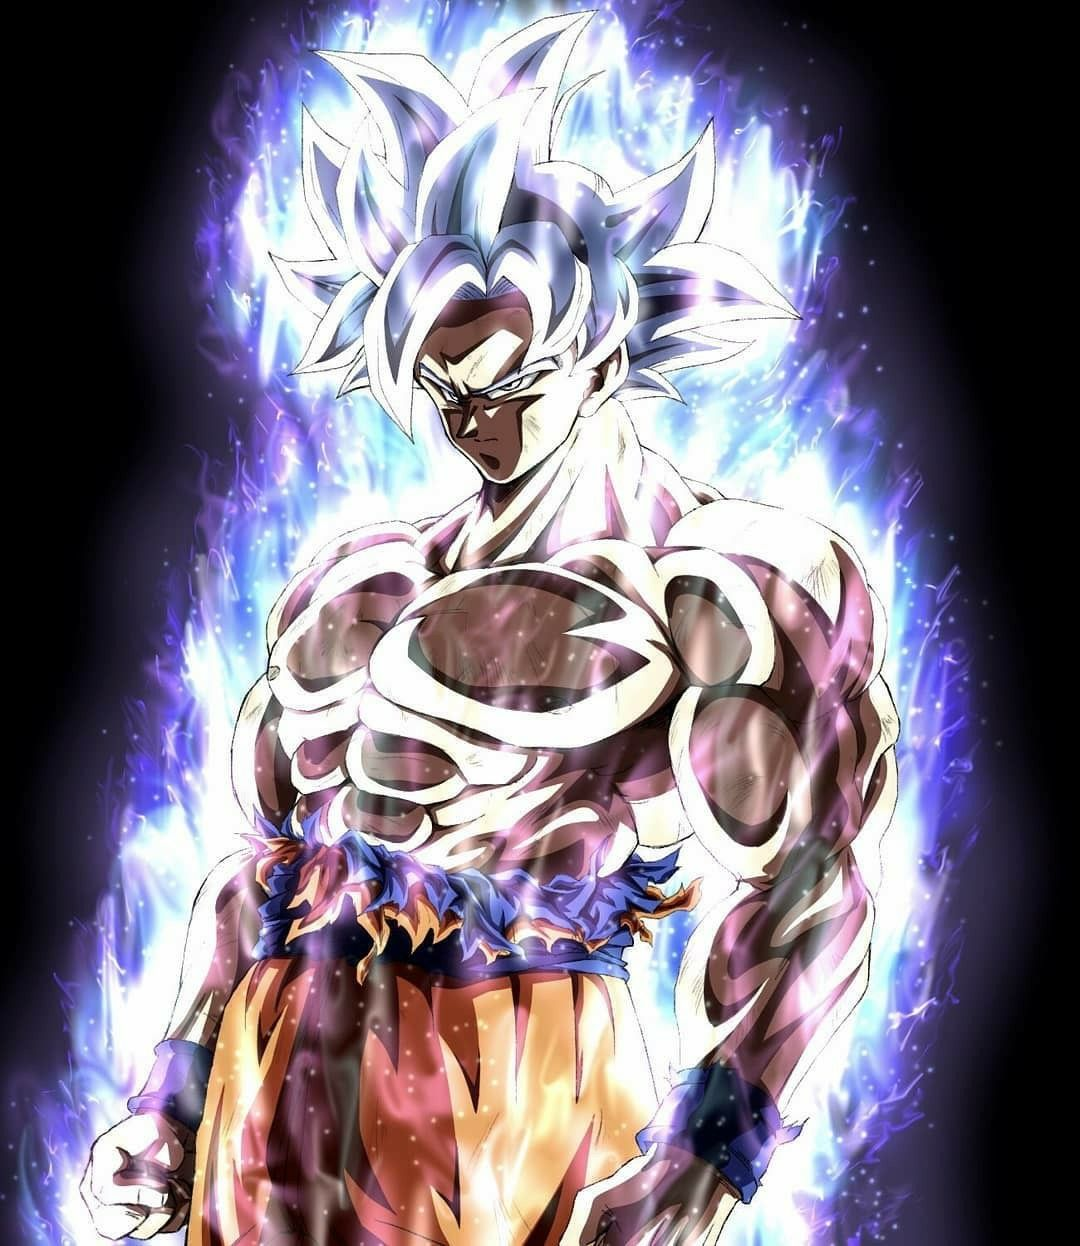 Pin By Marvin Alexis On Dbz Dbs Dragon Ball Art Goku Anime Dragon Ball Super Dragon Ball Super Manga